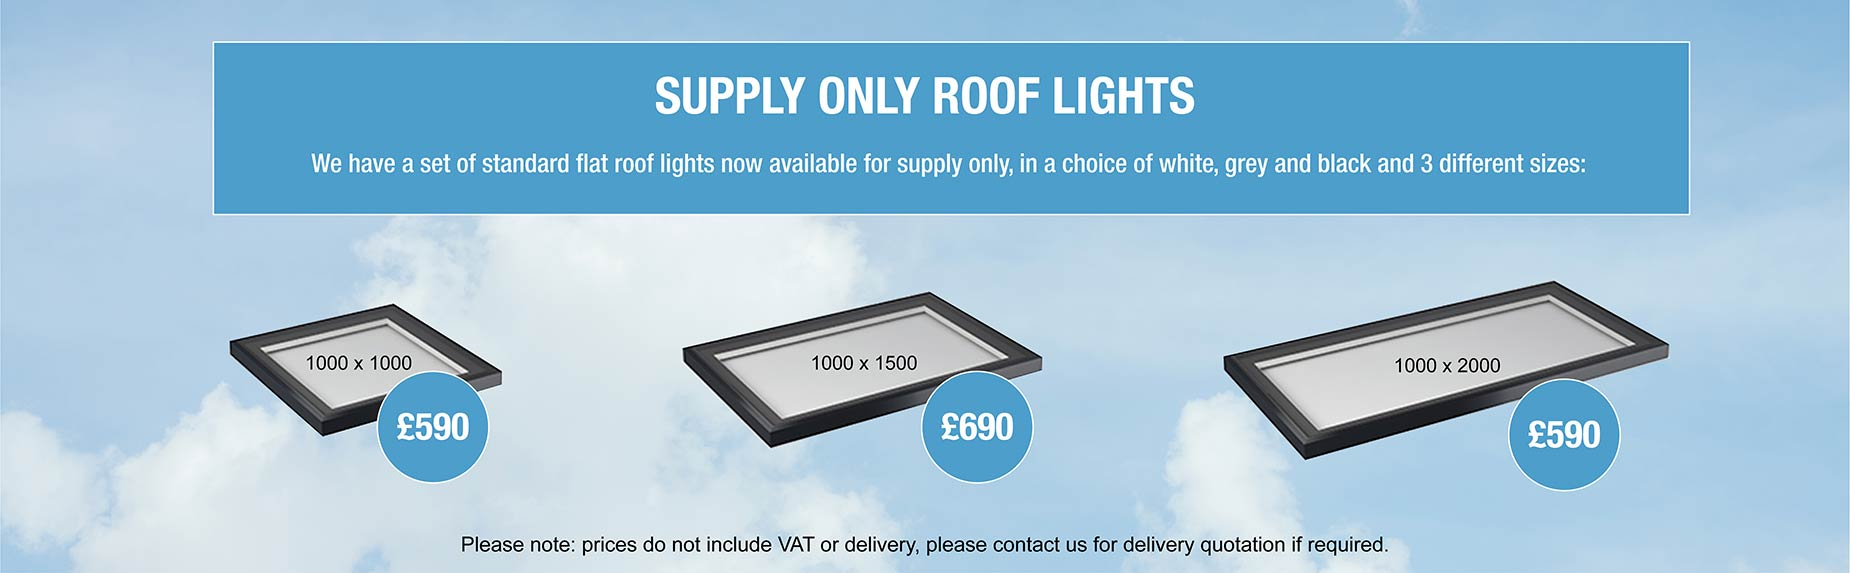 Supply only roof lights available in a range of stock sizex at a fixed price from £590 each.